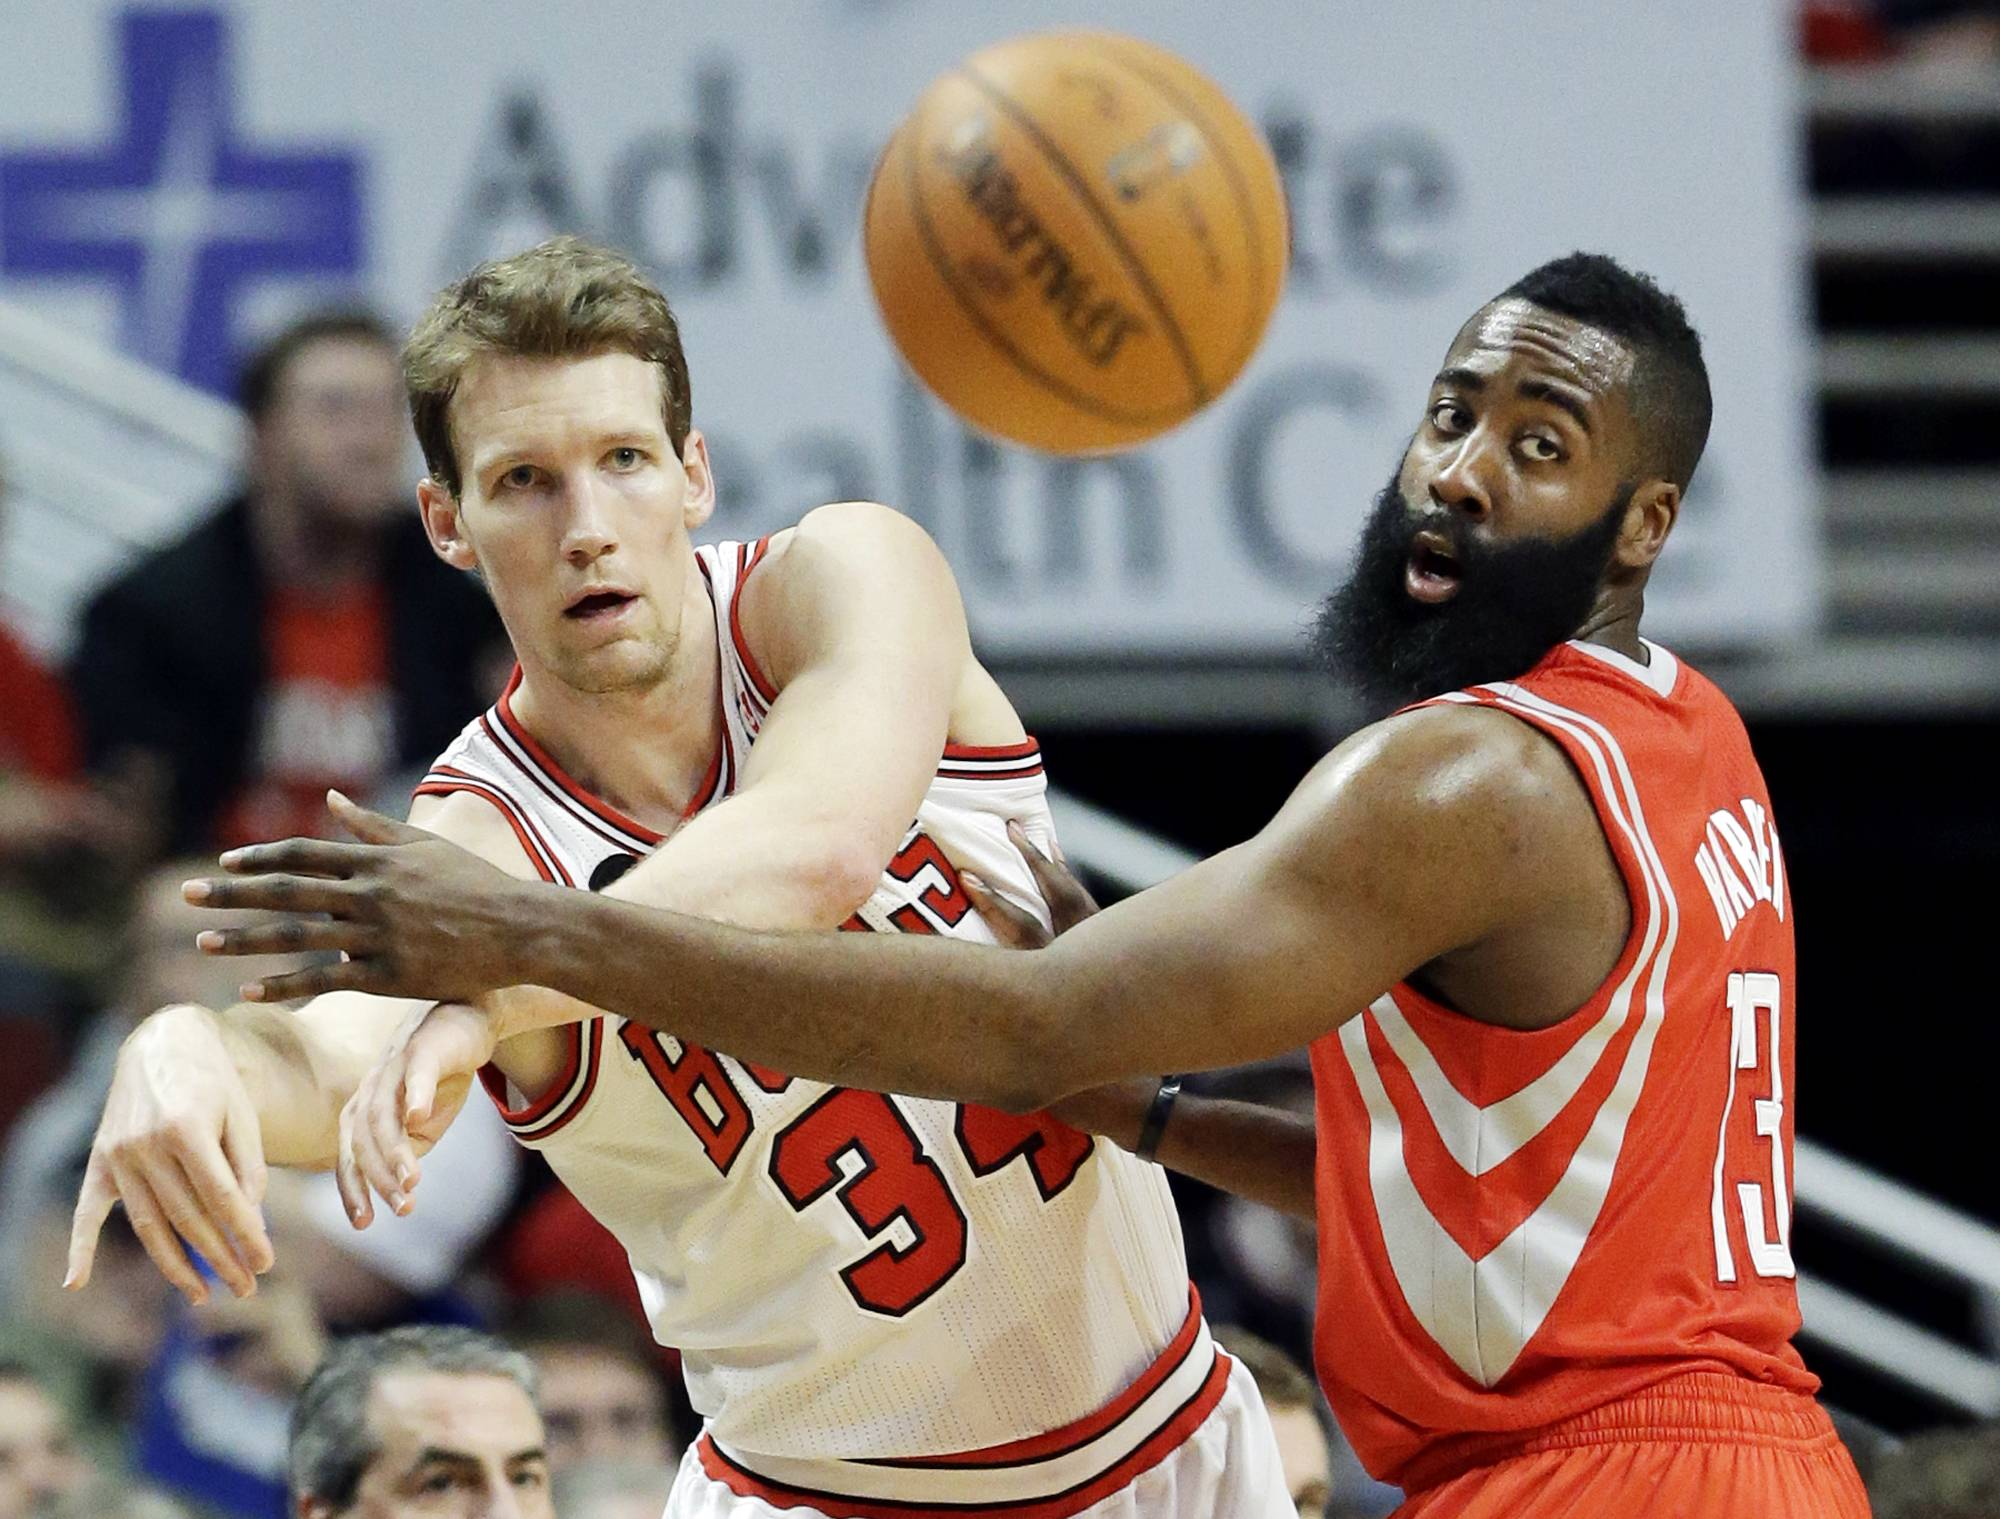 Chicago Bulls guard Mike Dunleavy, left, and Houston Rockets guard James Harden watch the ball after Dunleavy passed it during the first half of an NBA basketball game in Chicago on Thursday, March 13, 2014.